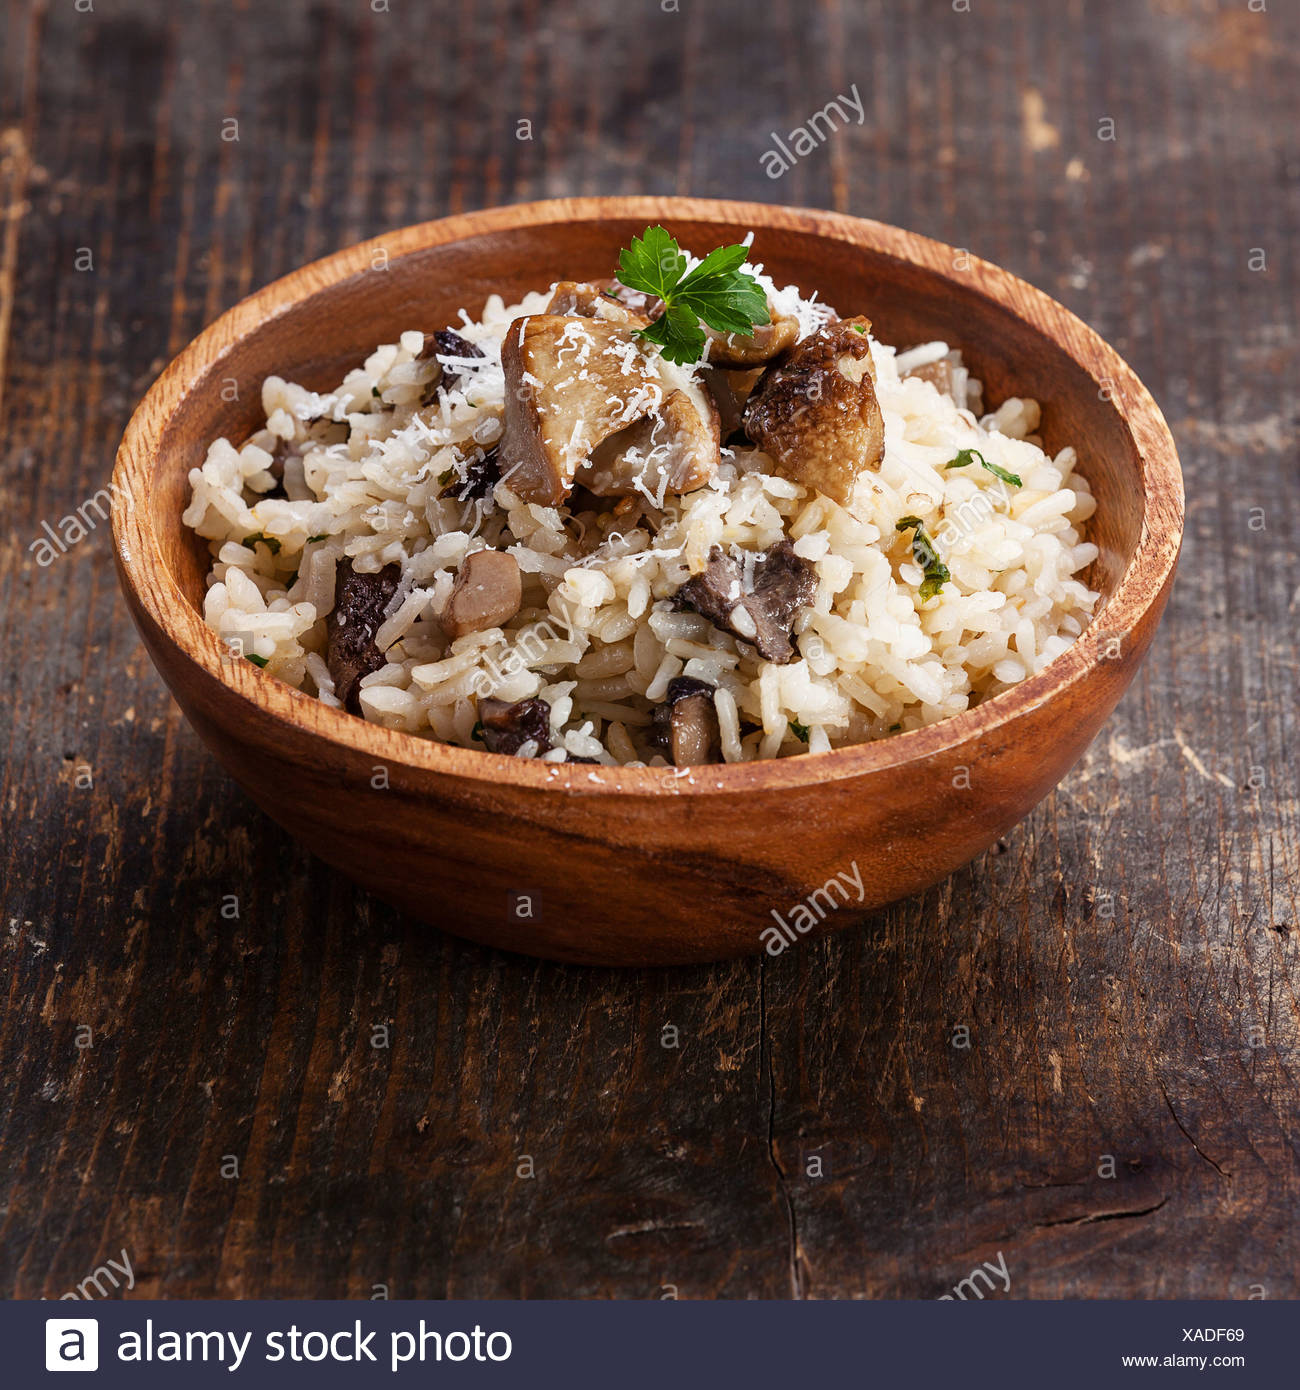 Wild mushrooms risotto with parsley and parmesan - Stock Image